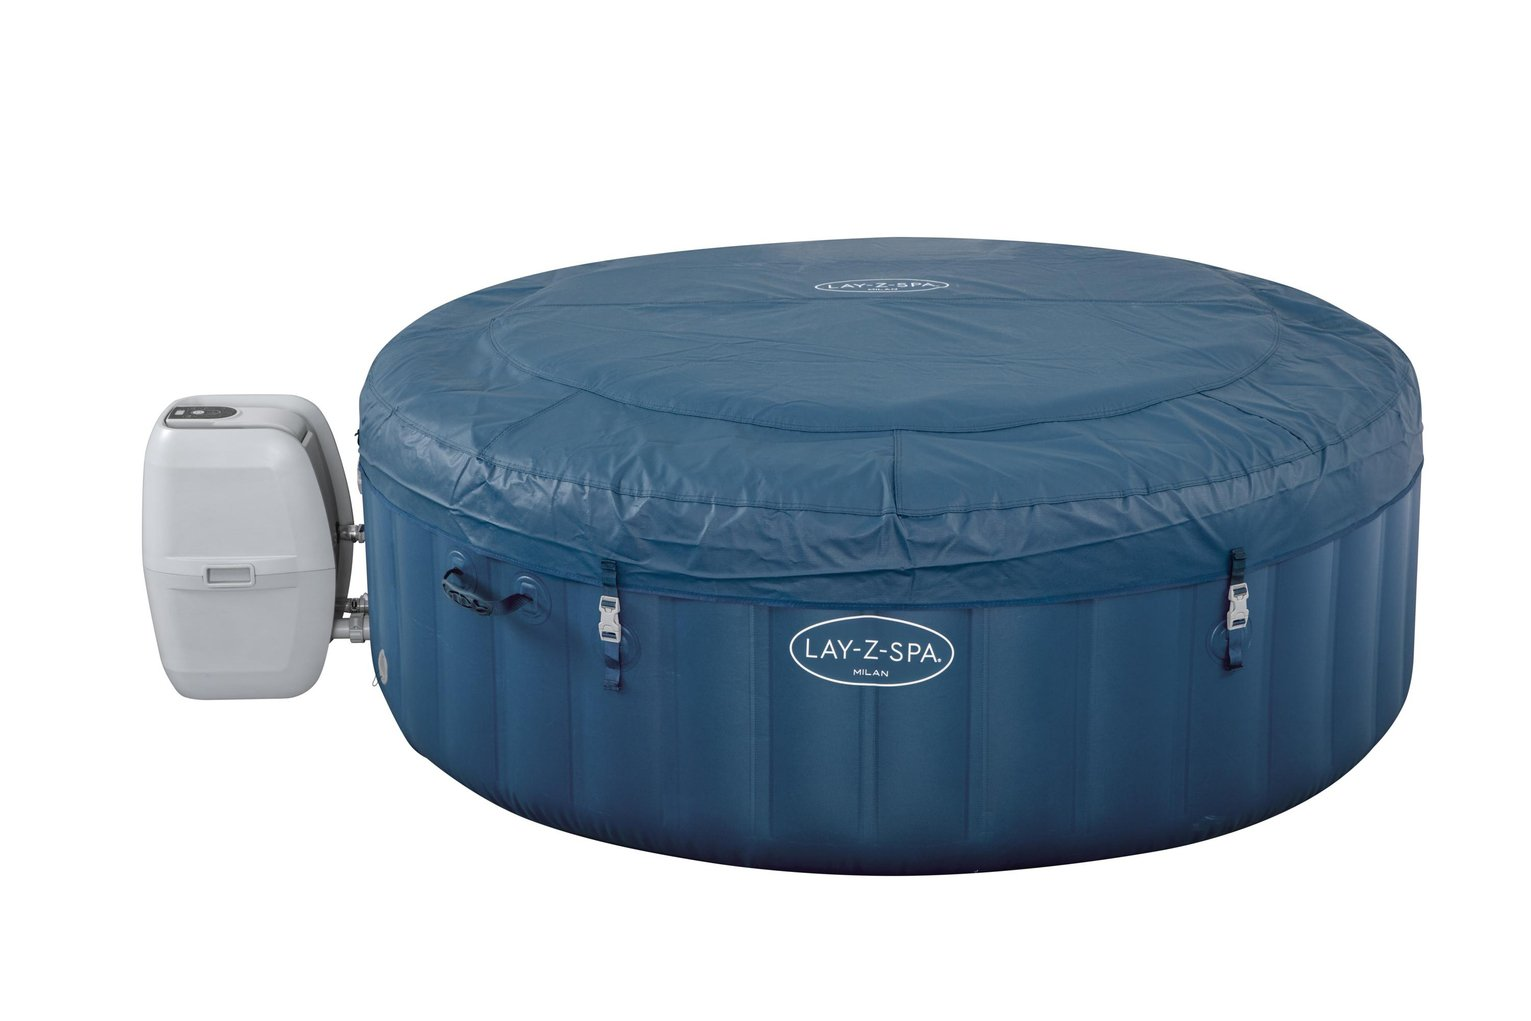 Lay-Z-Spa Milan 6 Person Smart Hot Tub - Home Delivery Only